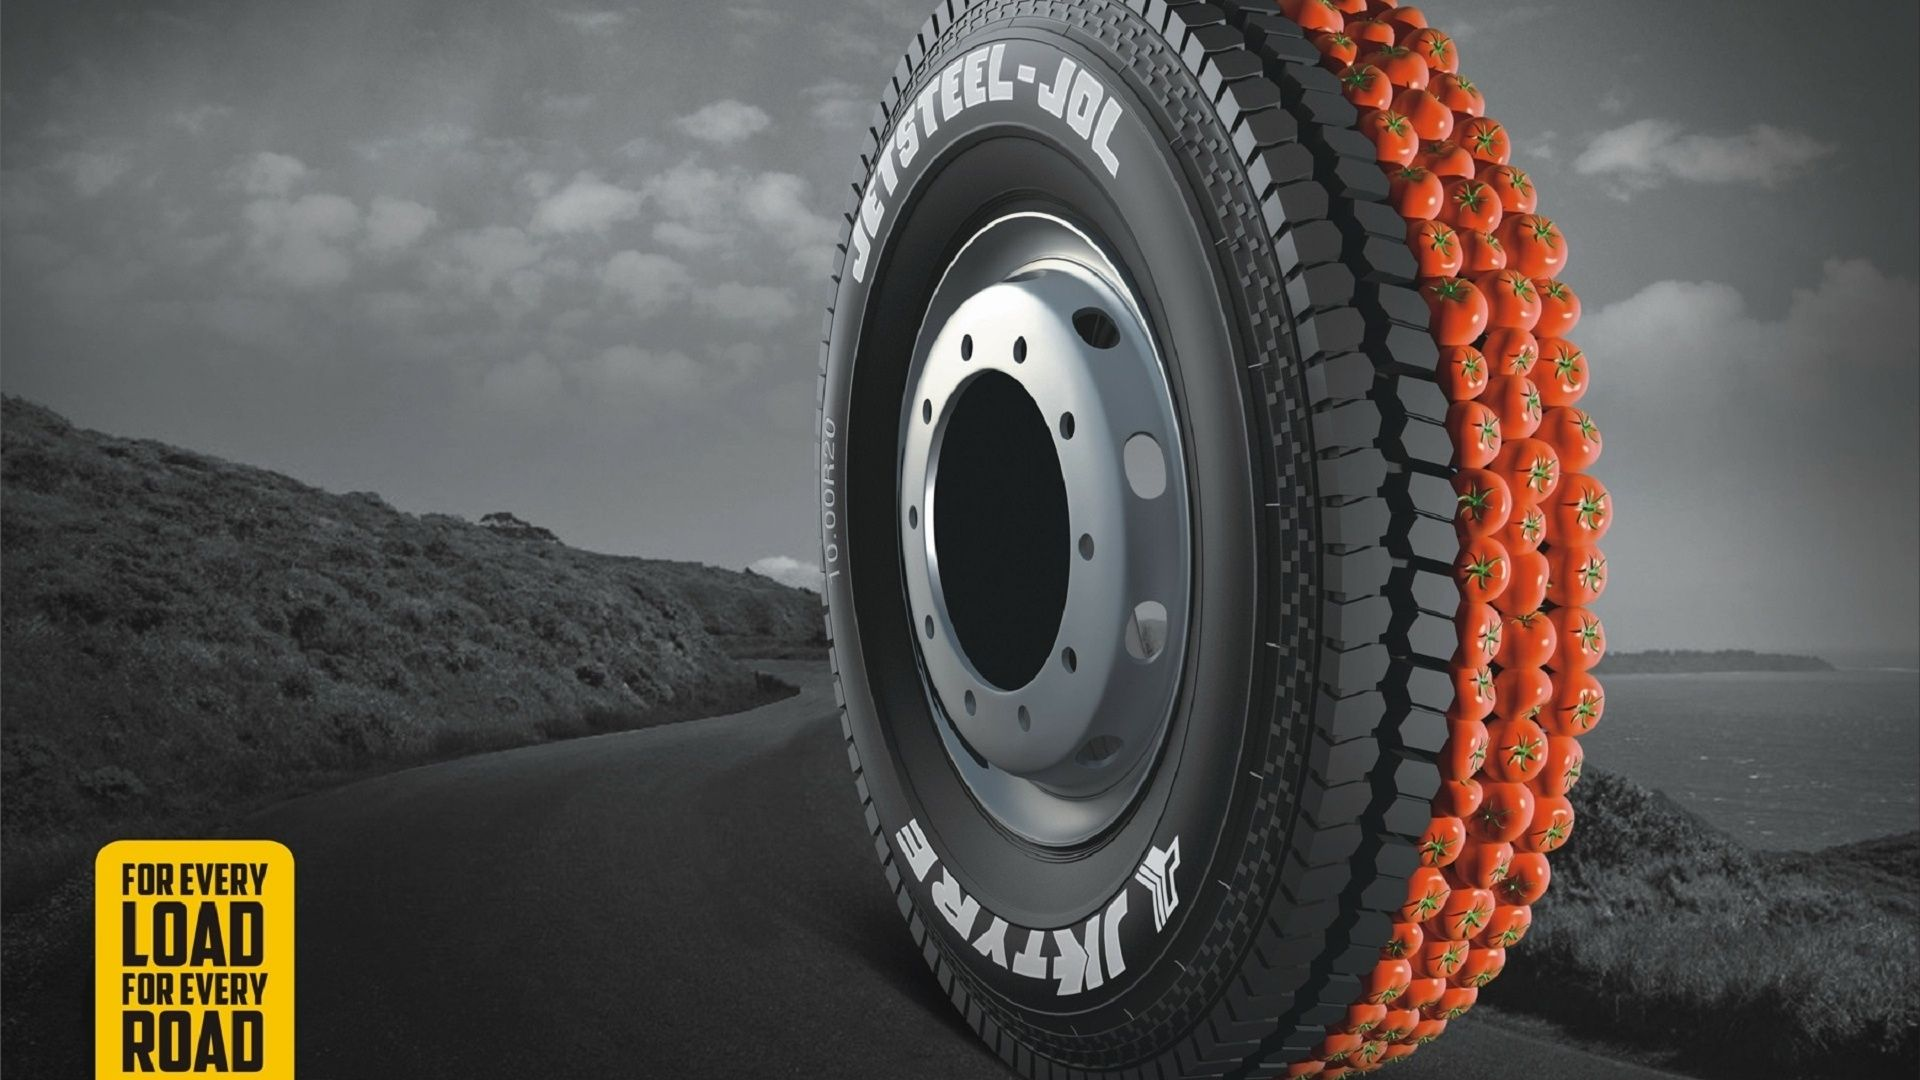 1920x1080 Tyres Tomattos Jk Tyres Wallpapers And Pictures Creative Advertising Campaign Creative Advertising Advertising